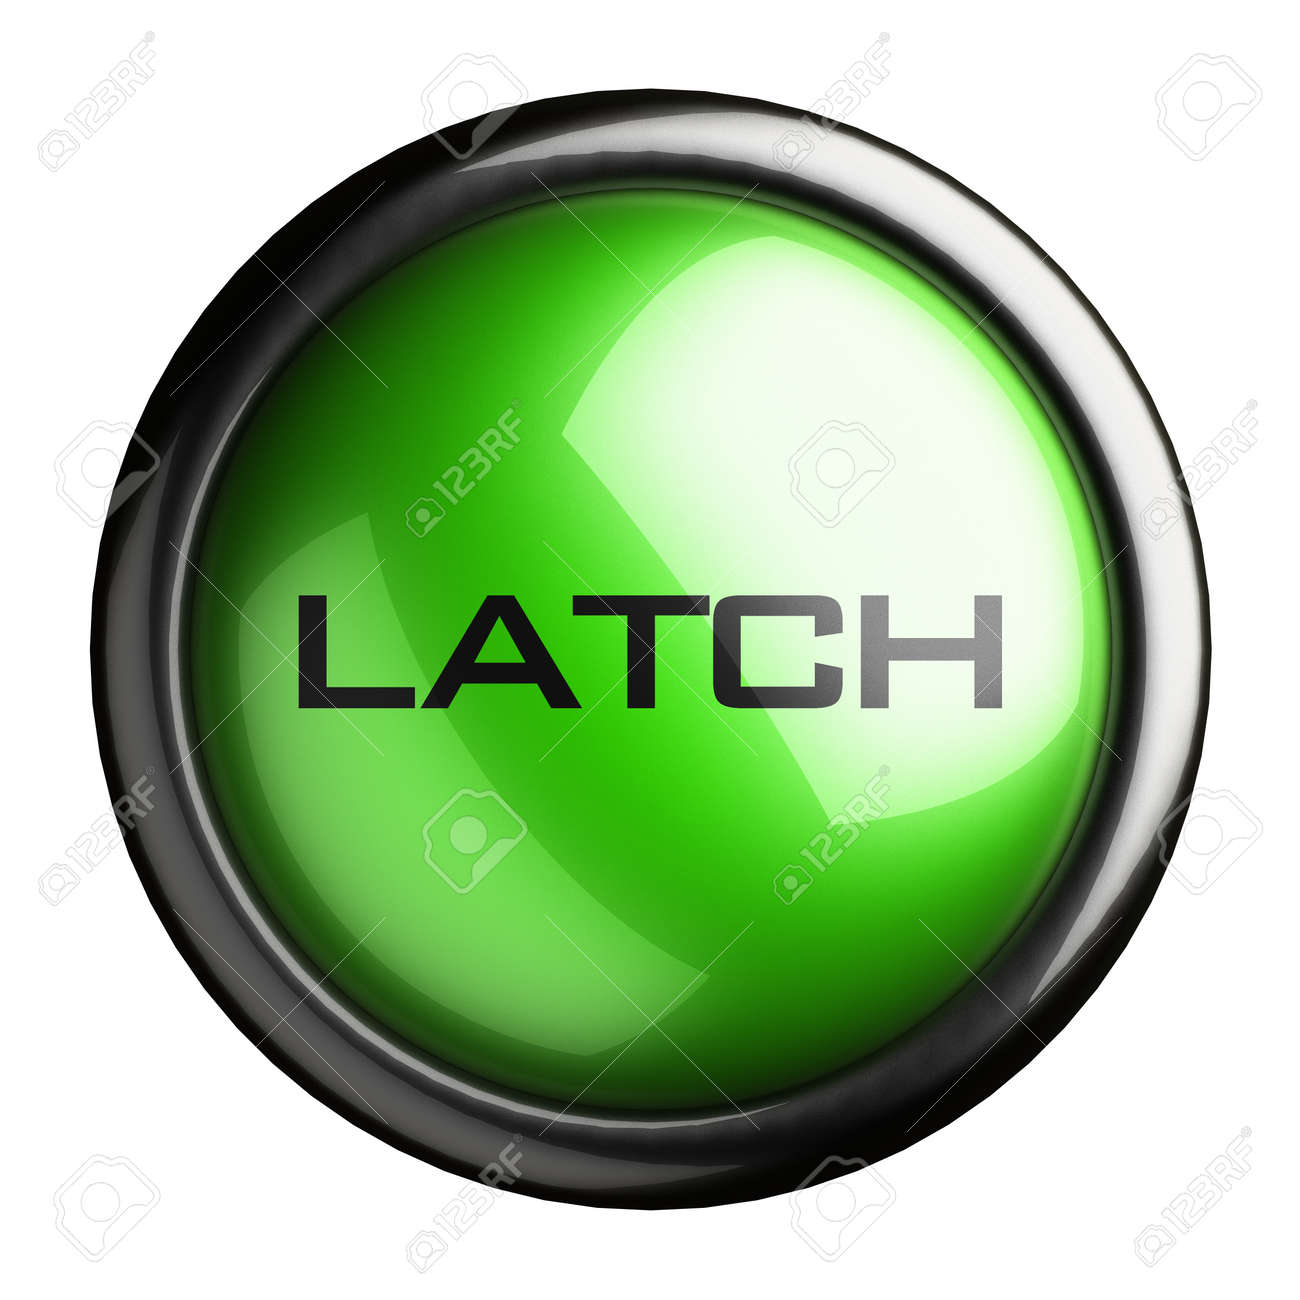 Word on the button Stock Photo - 16399709